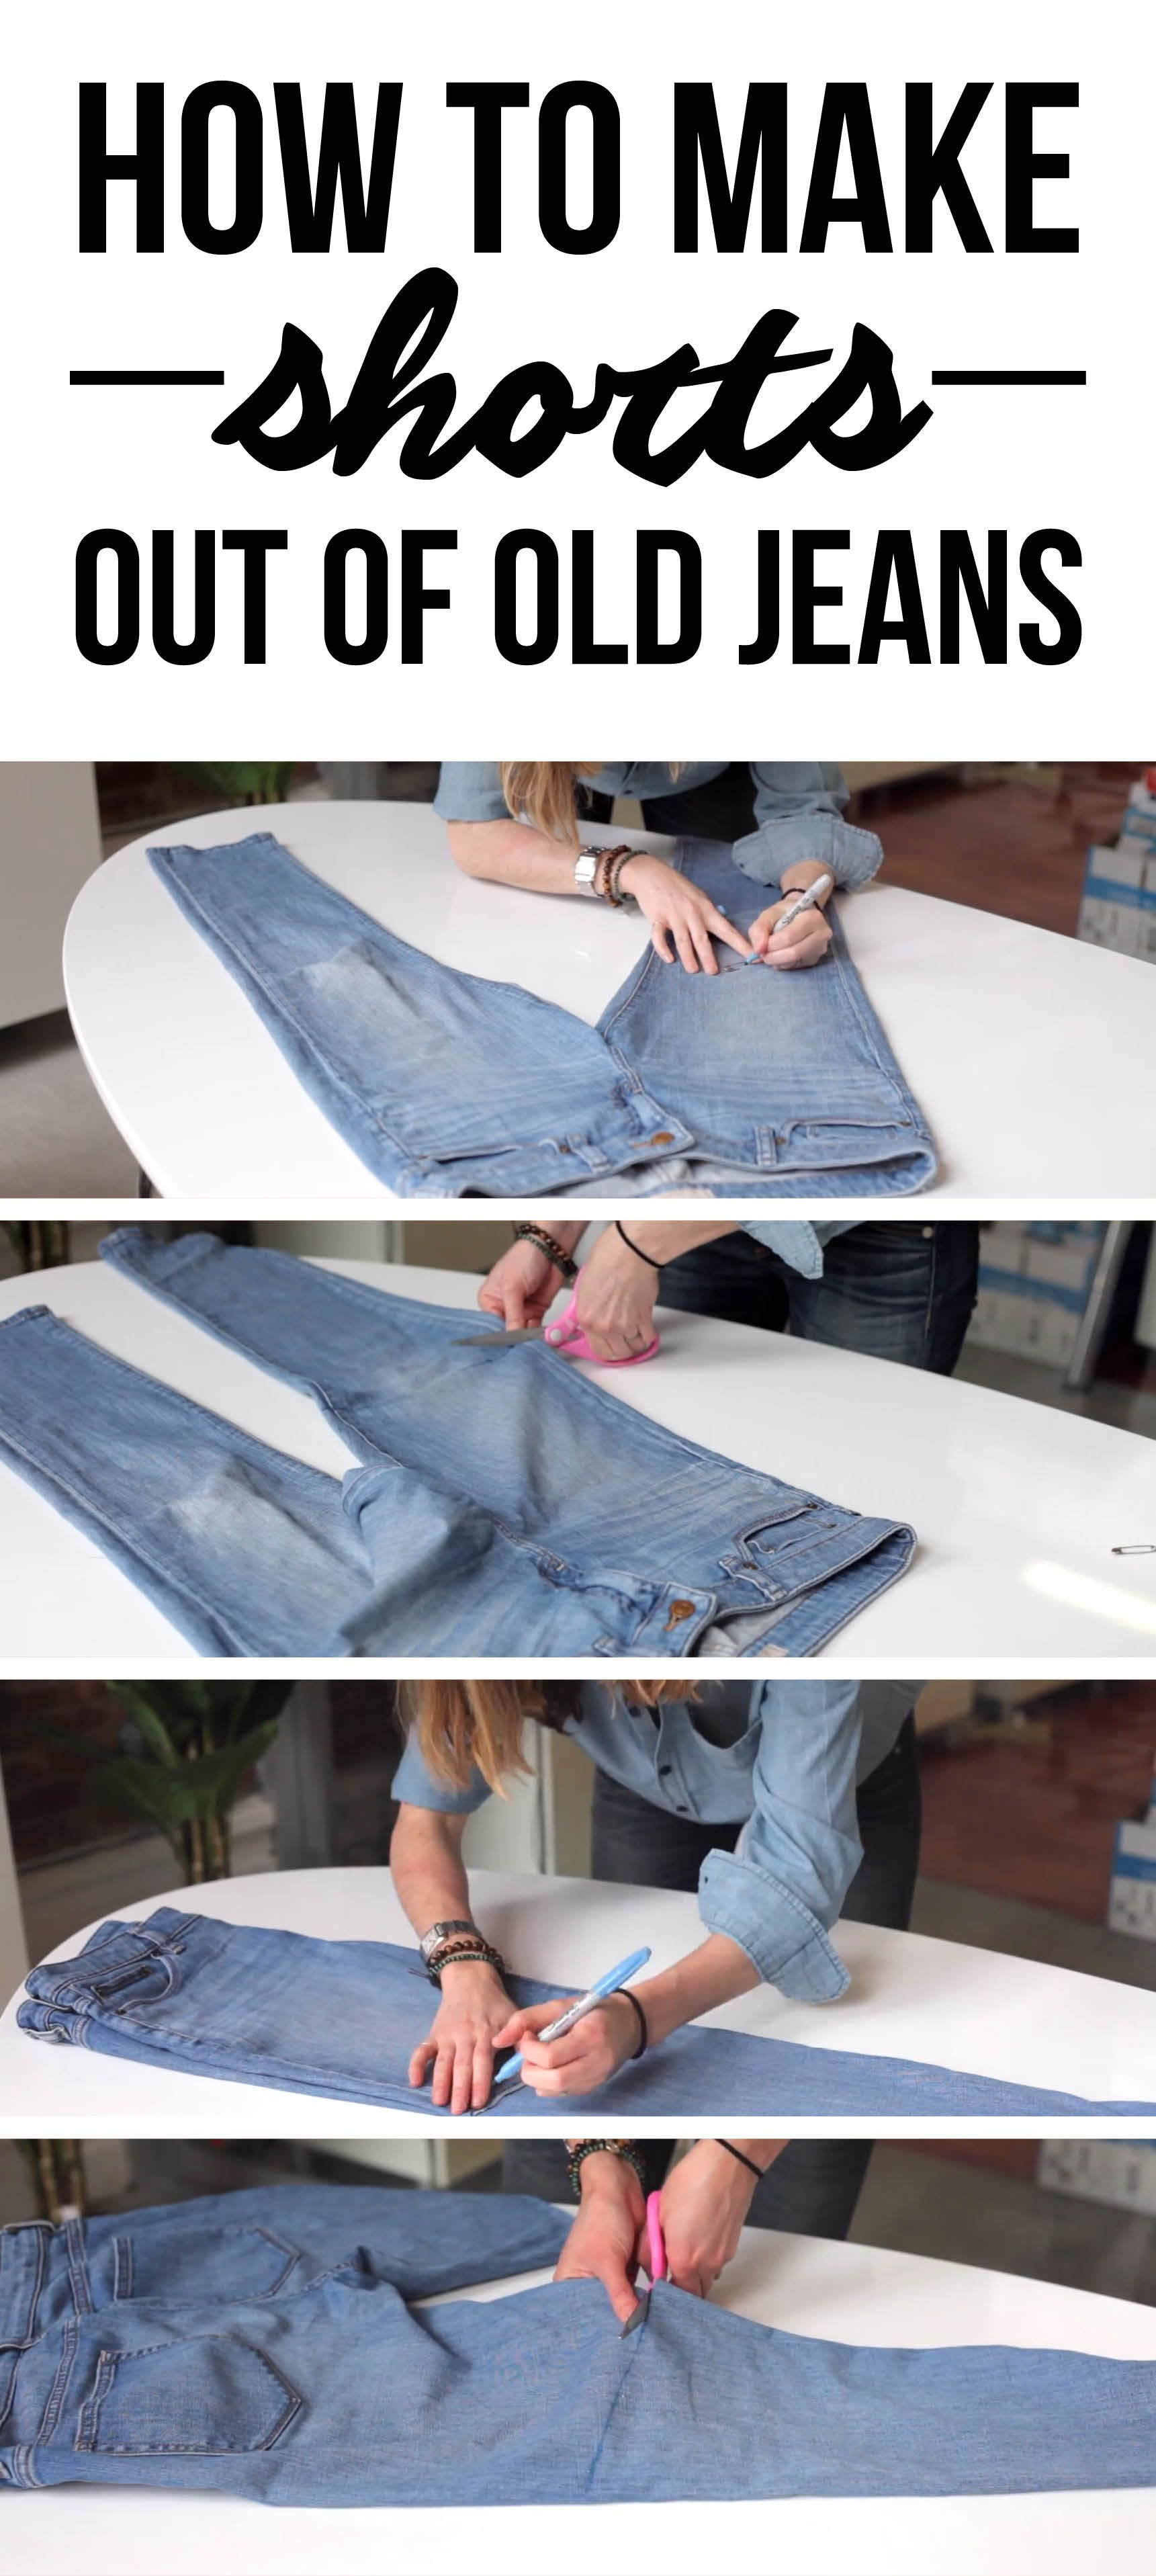 How to make fashionable shorts out of old jeans